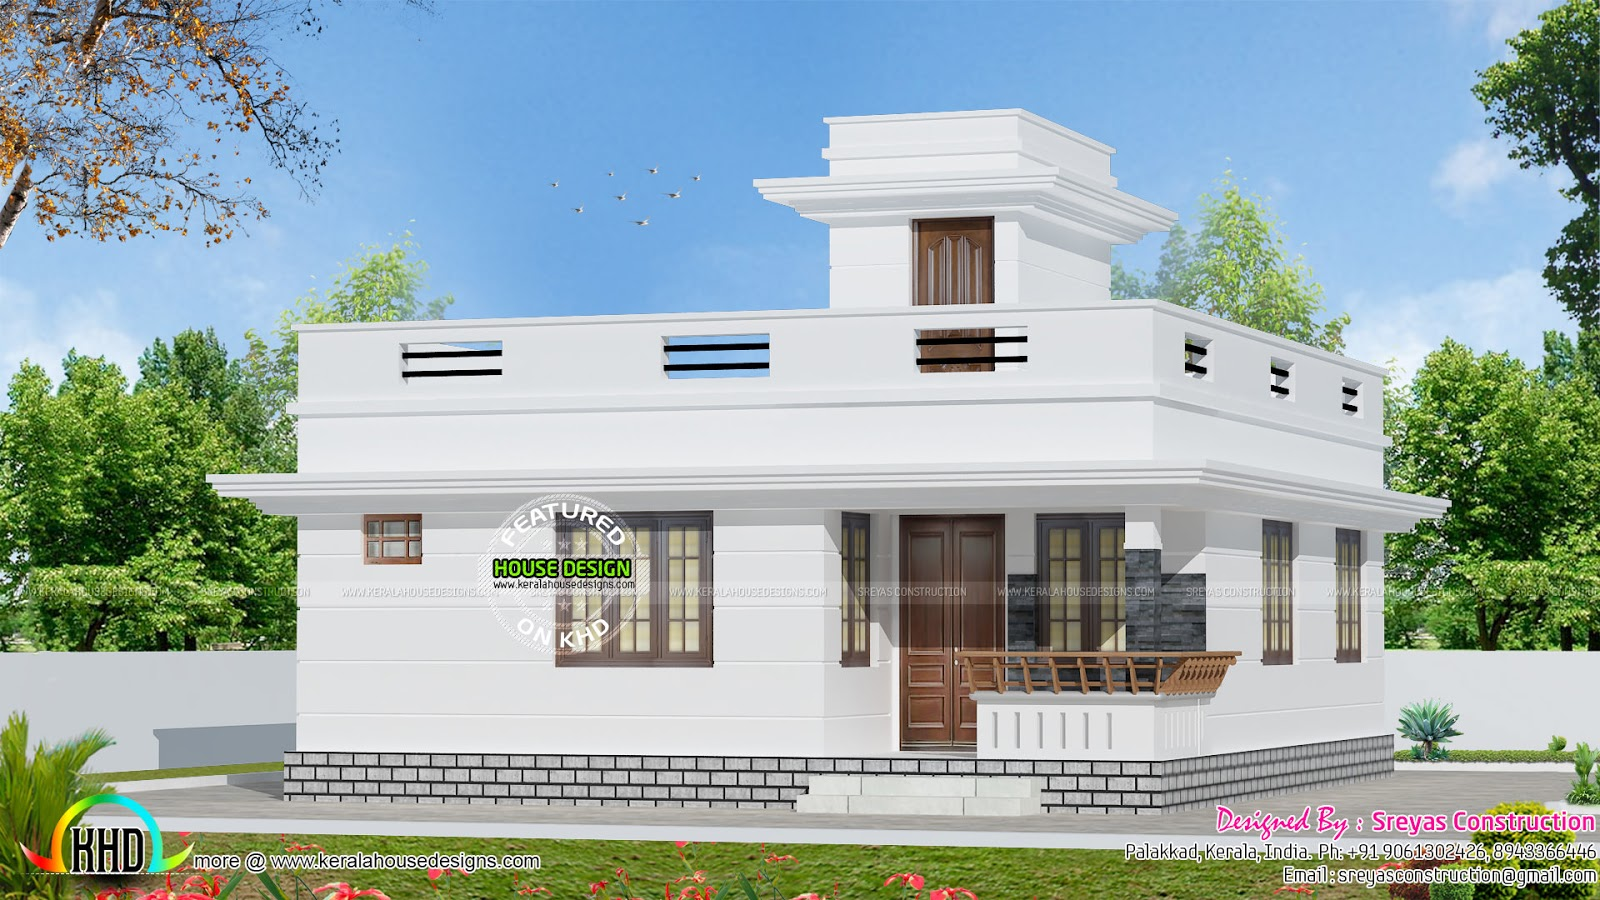 882 sq ft small house architecture kerala home design and floor plans Home design and cost